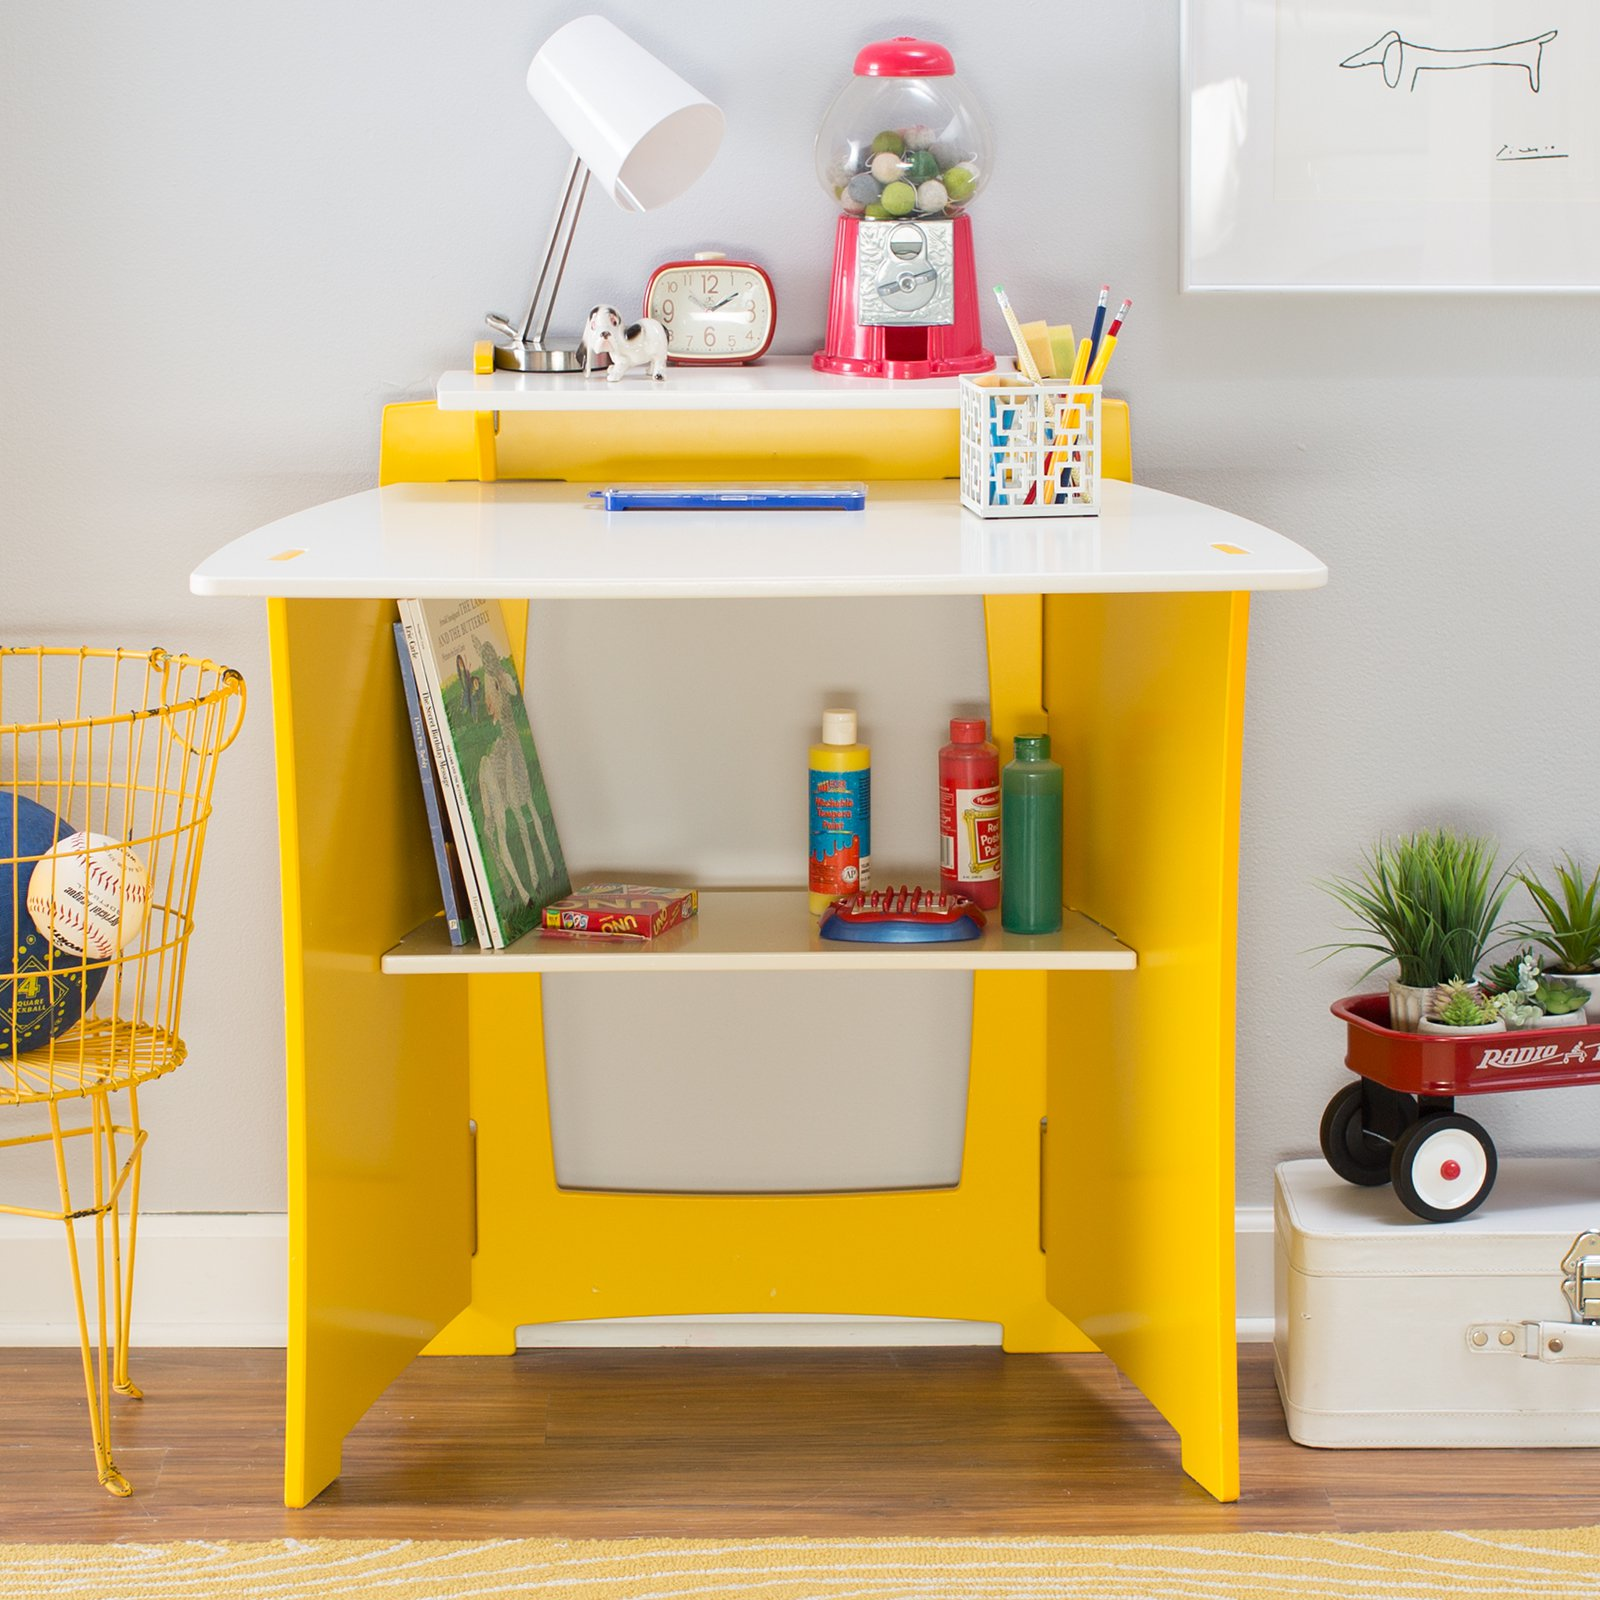 Legare 34 in. Kids Desk with Shelf - Yellow and White